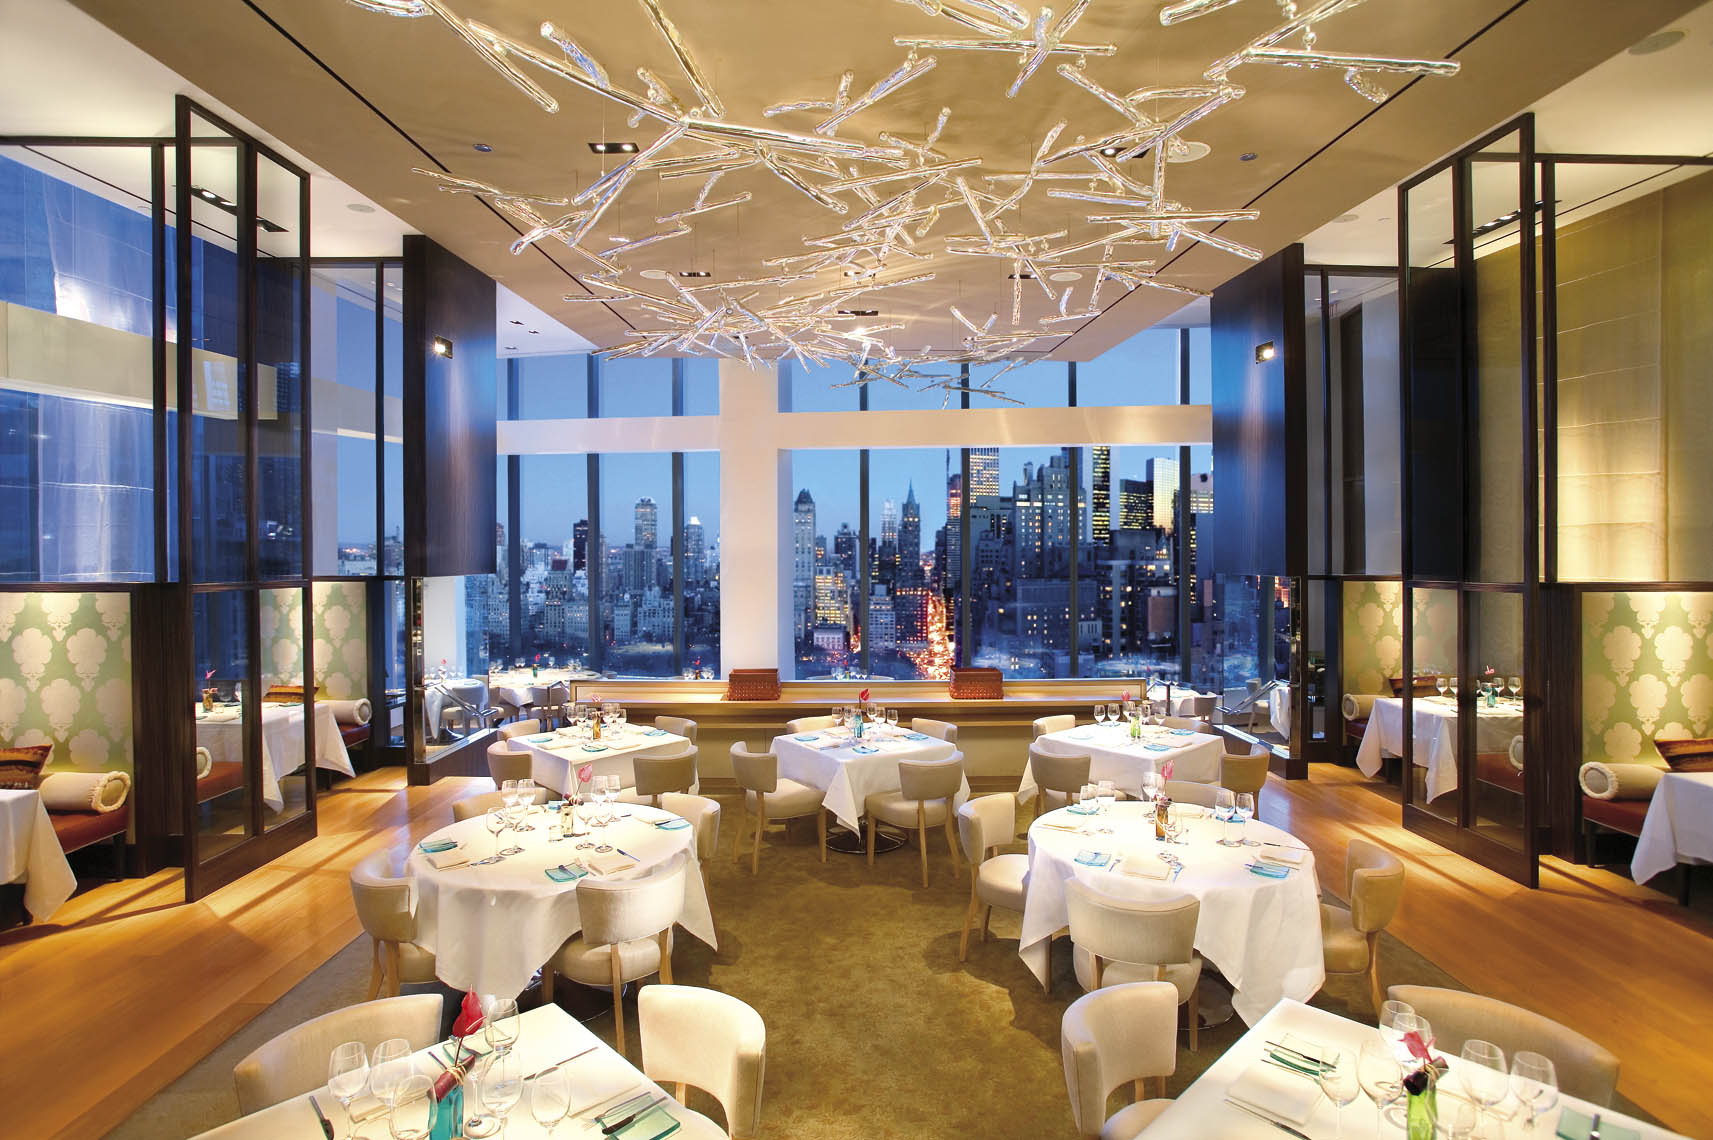 TOP 10 Best-Looking Restaurants in New York